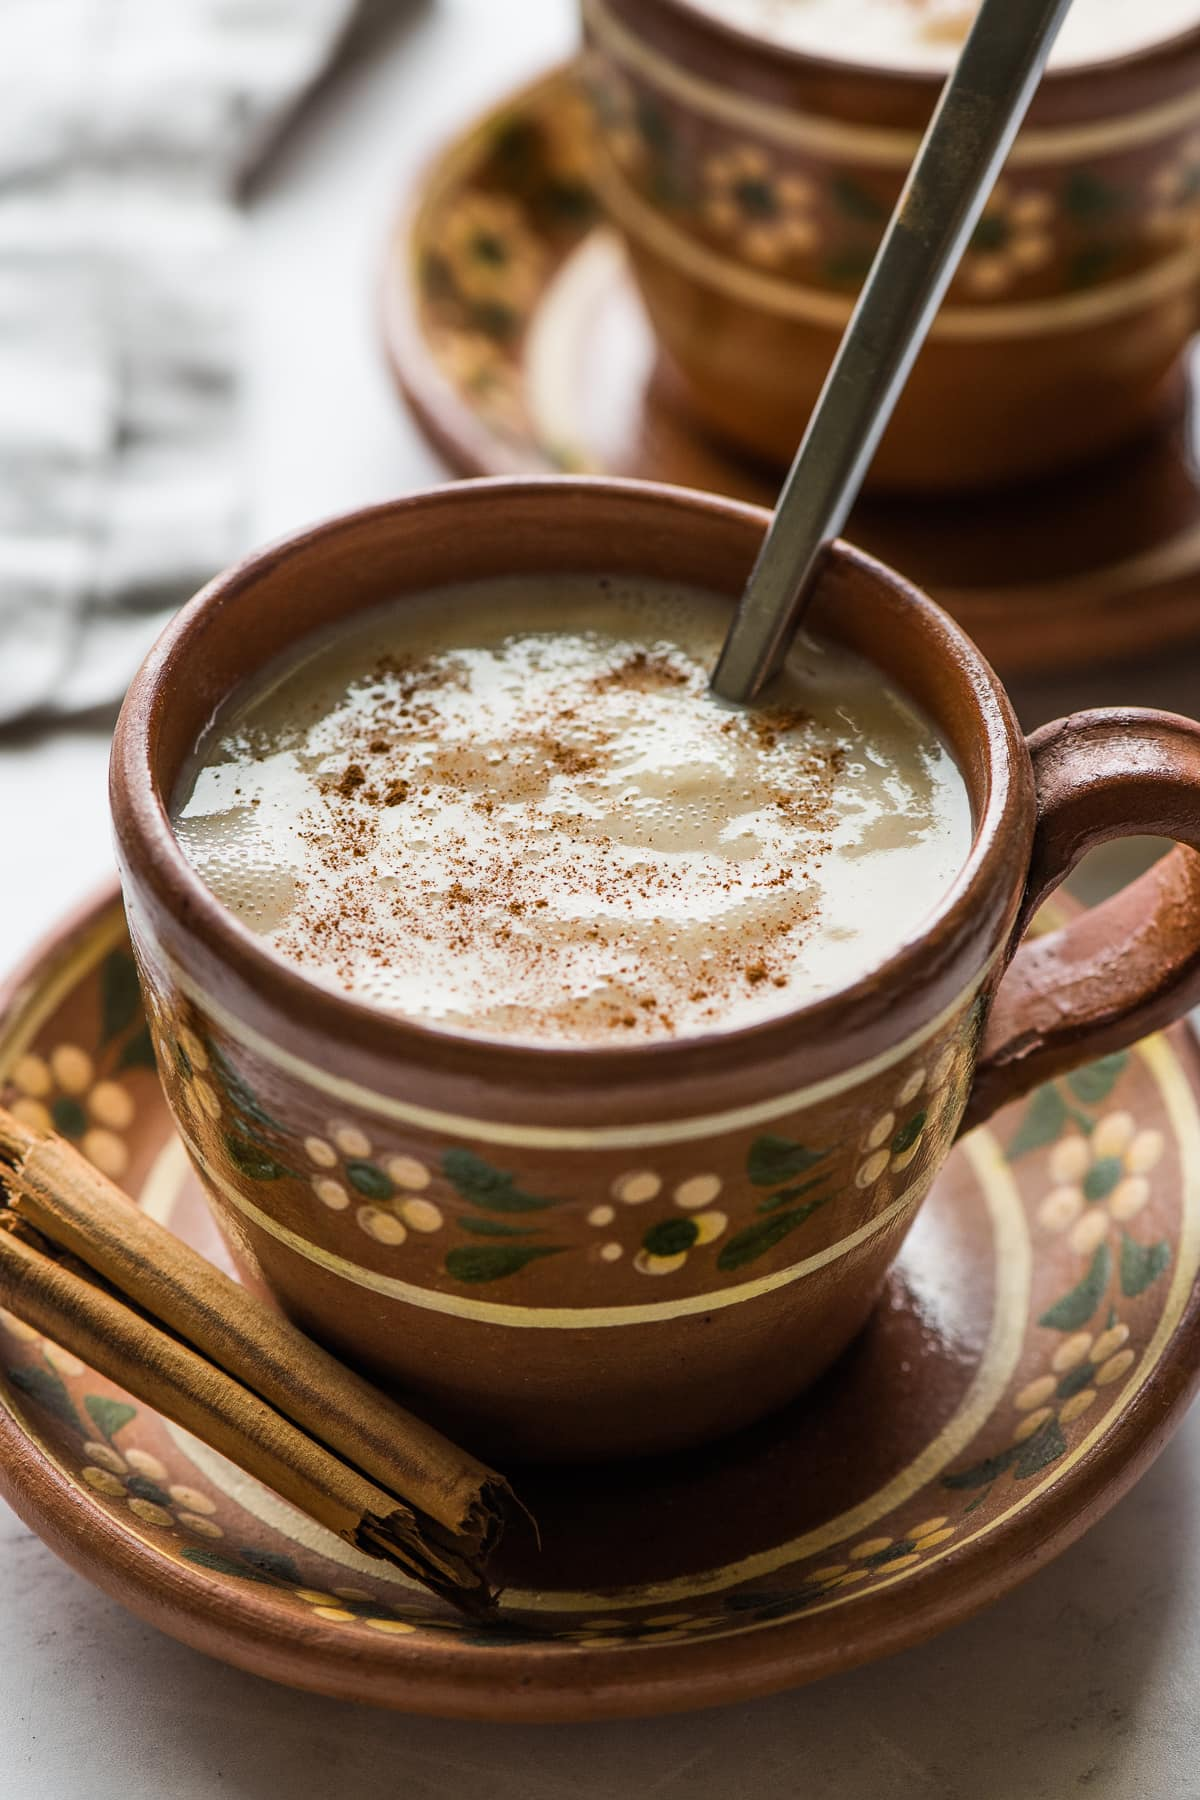 Atole in a mug ready to drink.